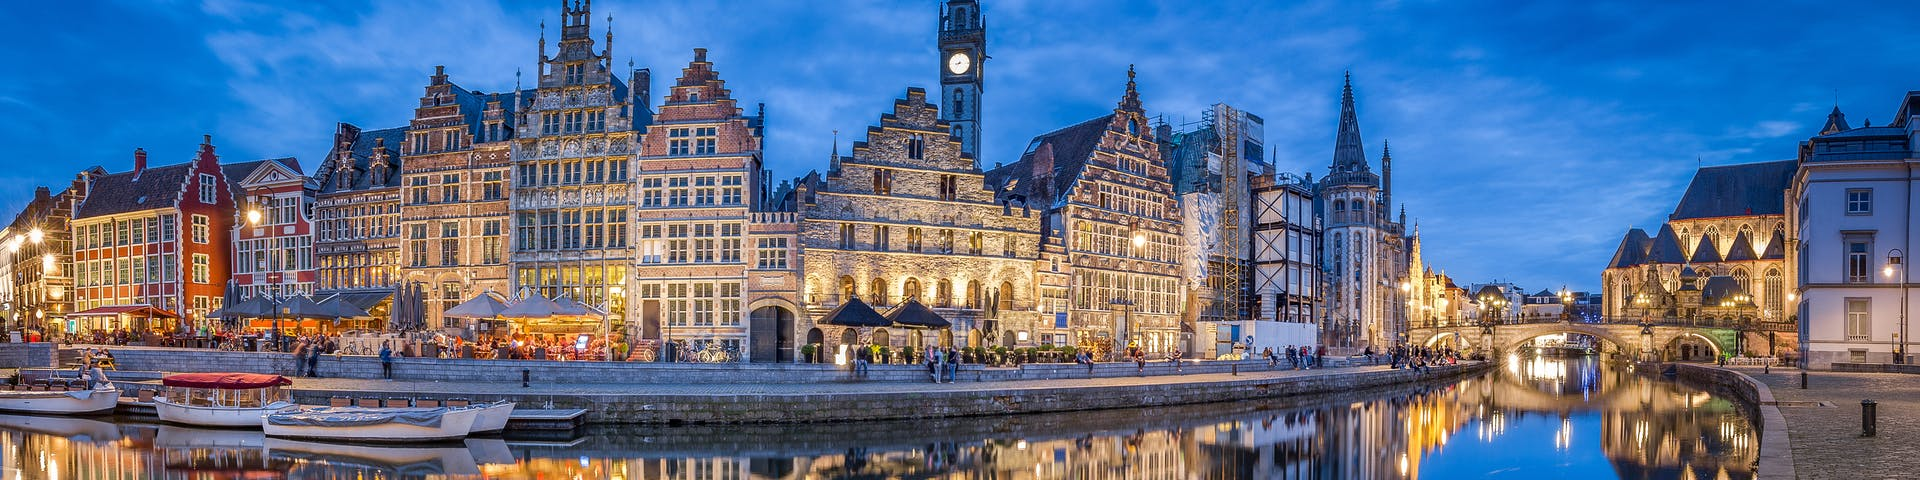 Costs of Studying and Living in Belgium - MastersPortal com